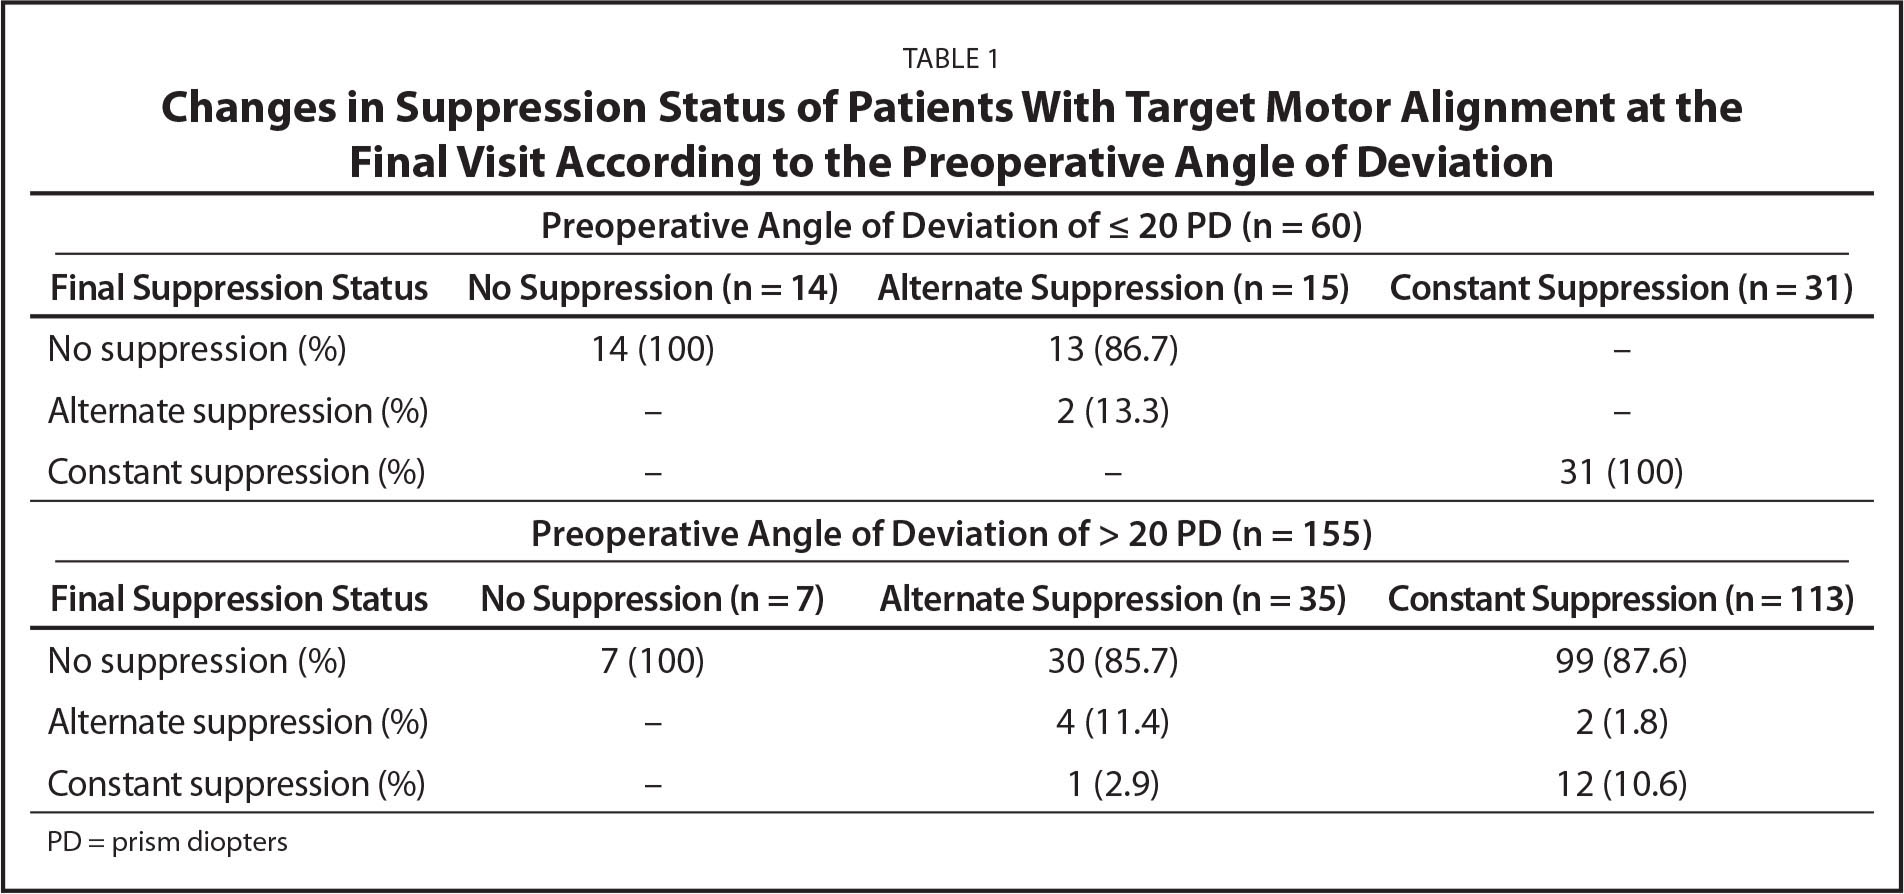 Changes in Suppression Status of Patients With Target Motor Alignment at the Final Visit According to the Preoperative Angle of Deviation